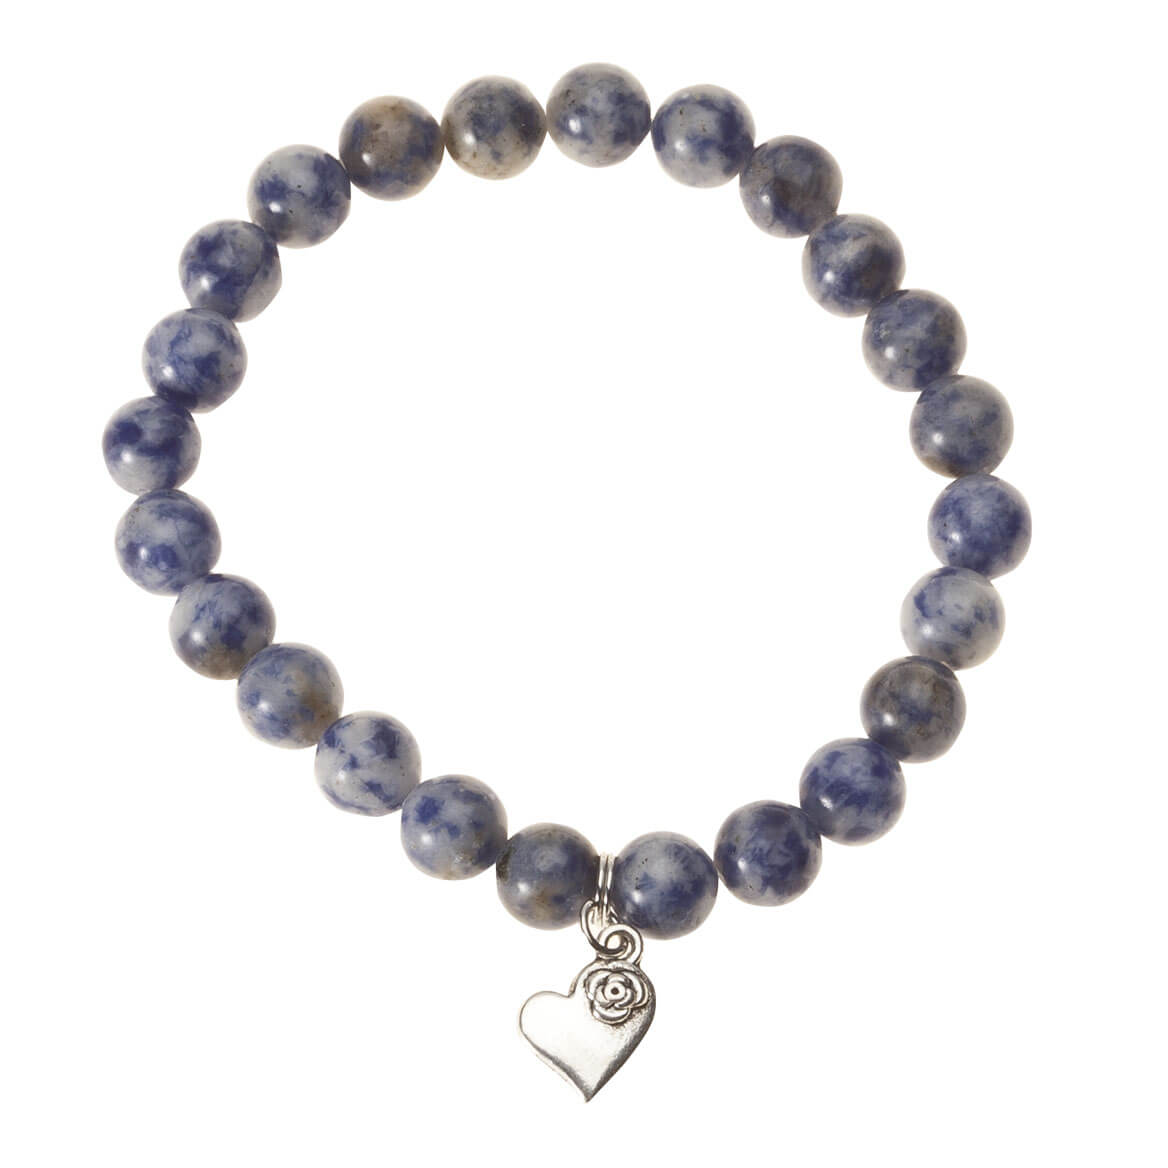 Weight Loss Bracelet with Heart Charm